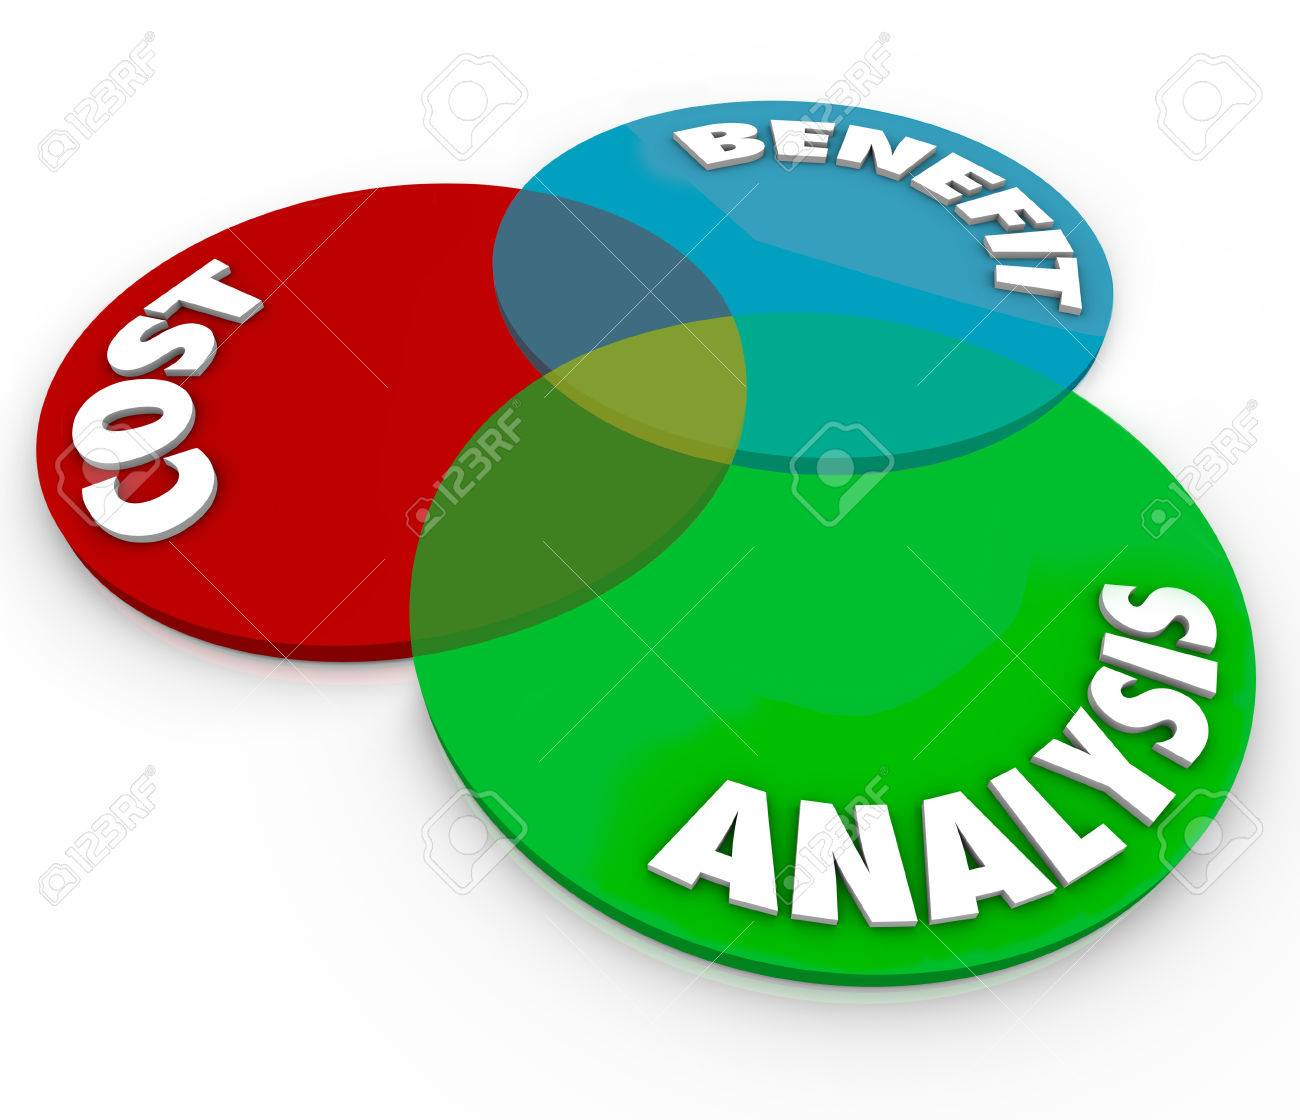 cost benefit analysis stock photos images  royalty free cost    cost benefit analysis  cost benefit analysis words on a d venn diagram of overlapping circles